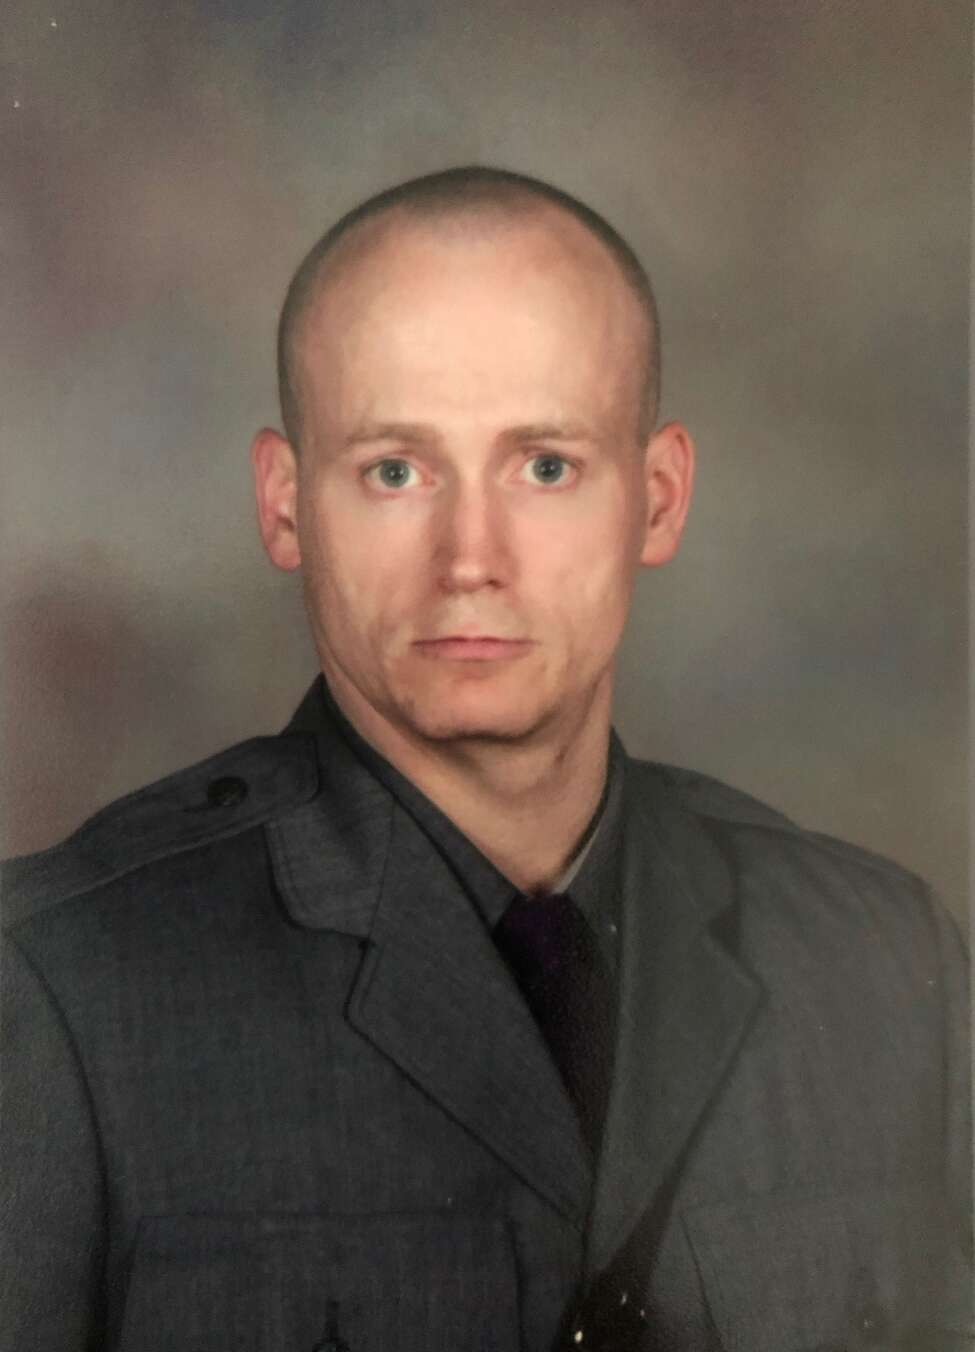 Trooper Jeremy VanNostrand, a six-year veteran of the State Police, died on Nov. 27, 2018, in a crash near the Fonda State Police barracks in Montgomery County. Read more.